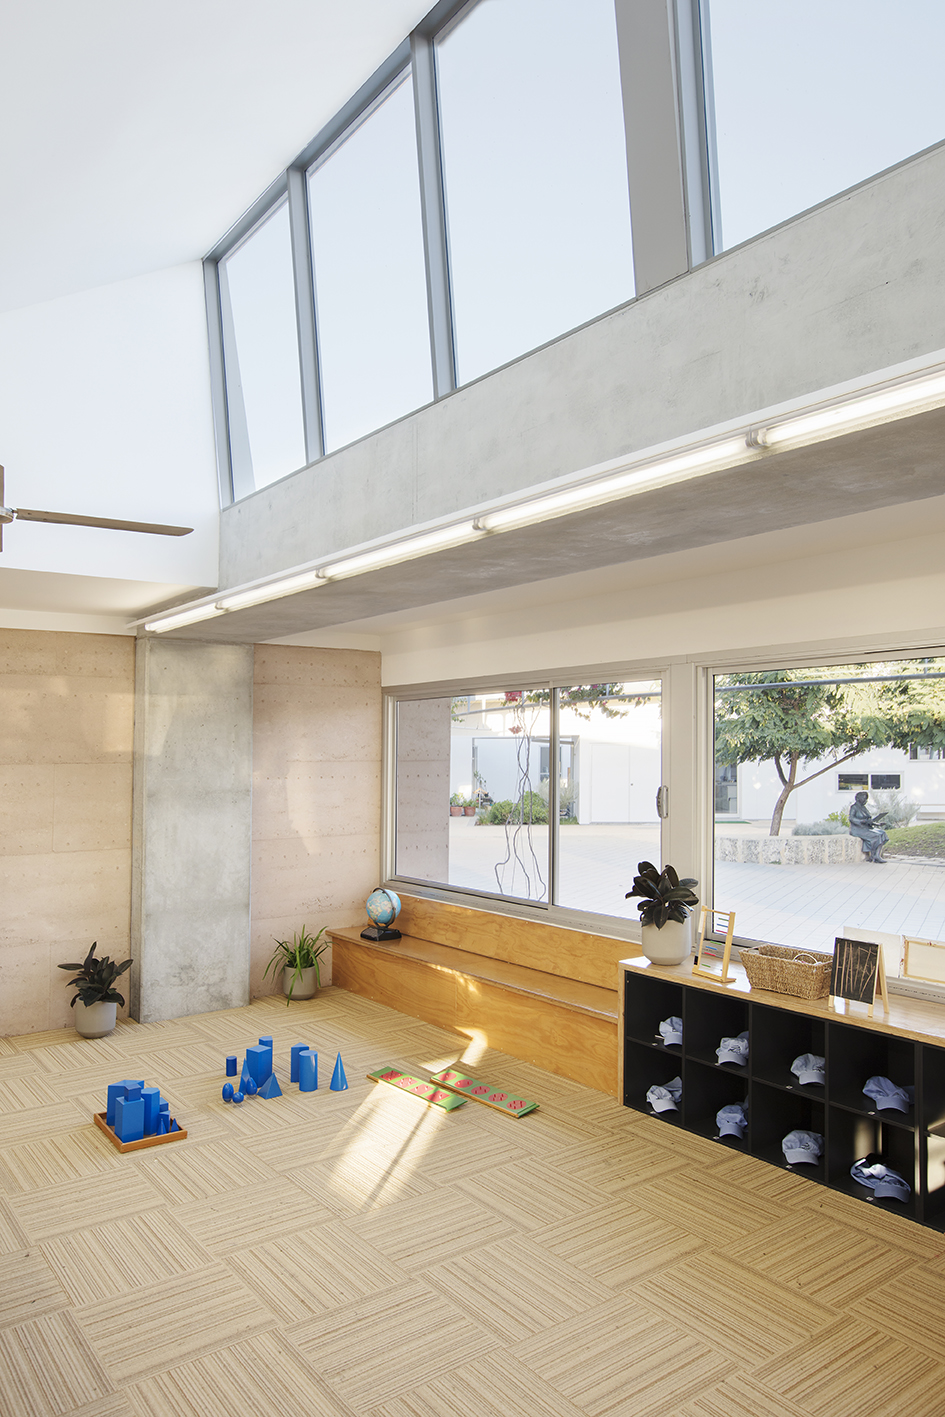 Gallery Of Beehive Montessori By Ehdo Architecture Local Design And Interiors Mosman Park, Wa Image 7